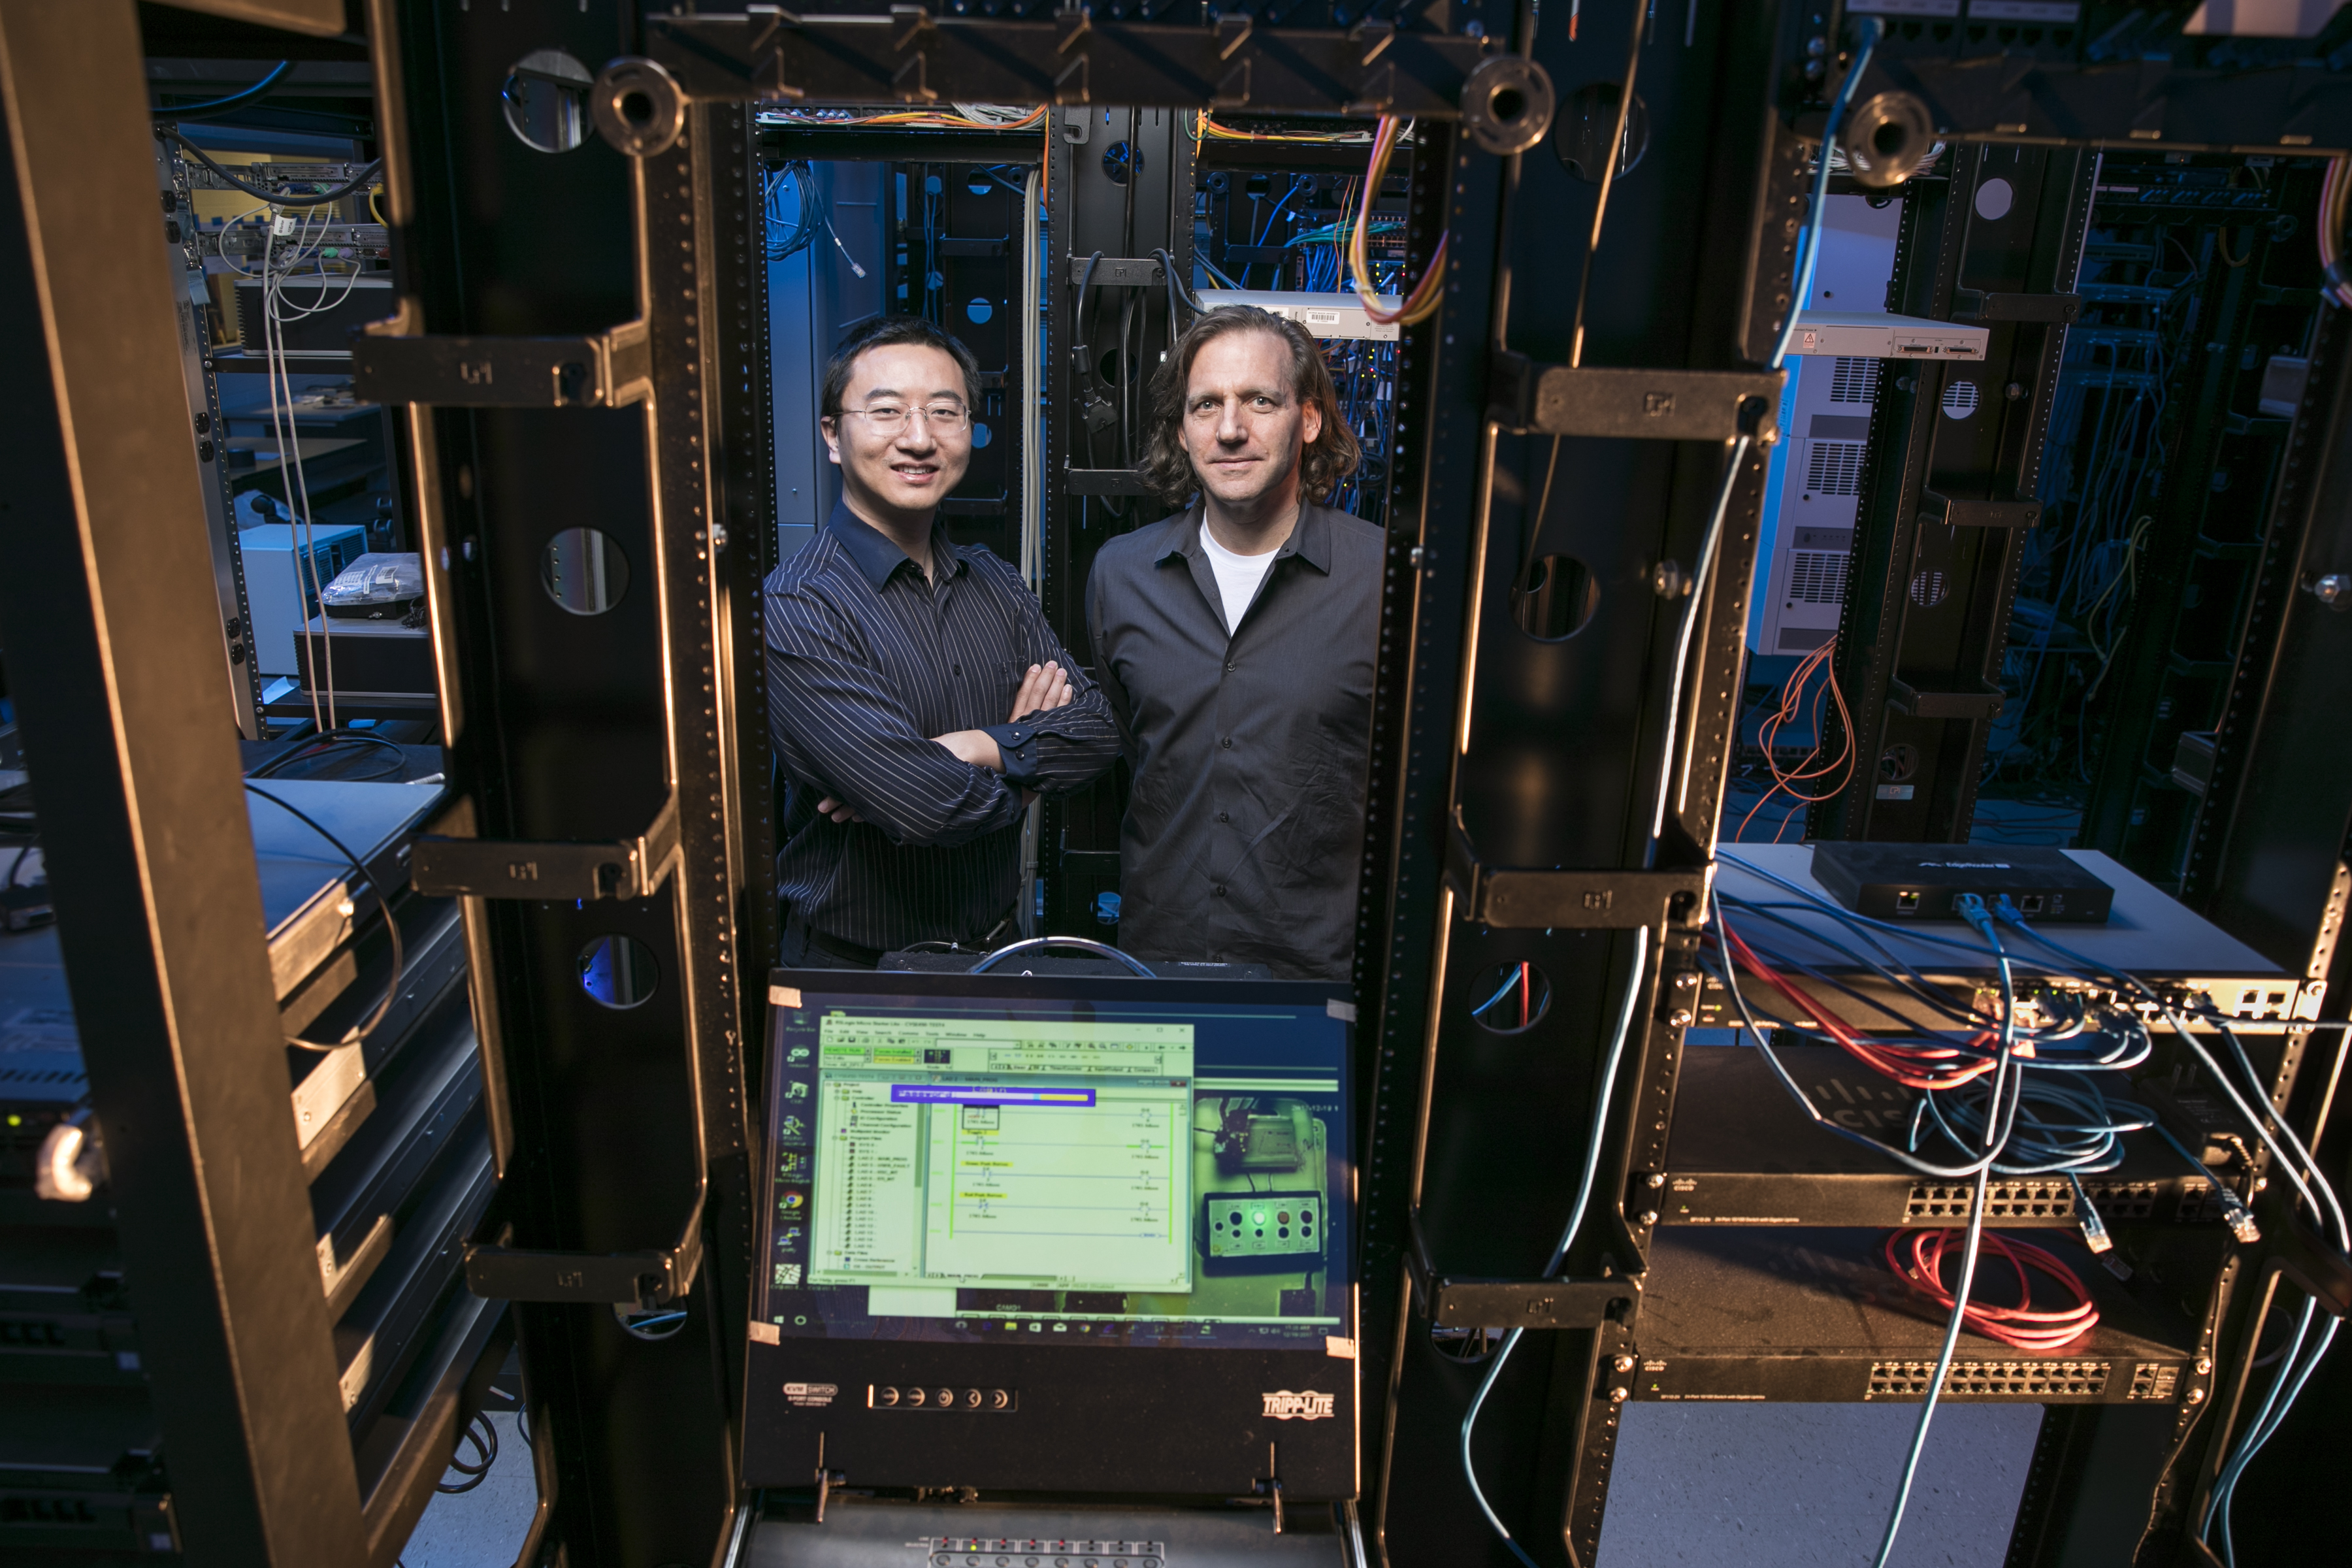 Professors Kai Zeng (left) and Jim Jones work together in the cyber-physical security lab. Photo by Ron Aira.